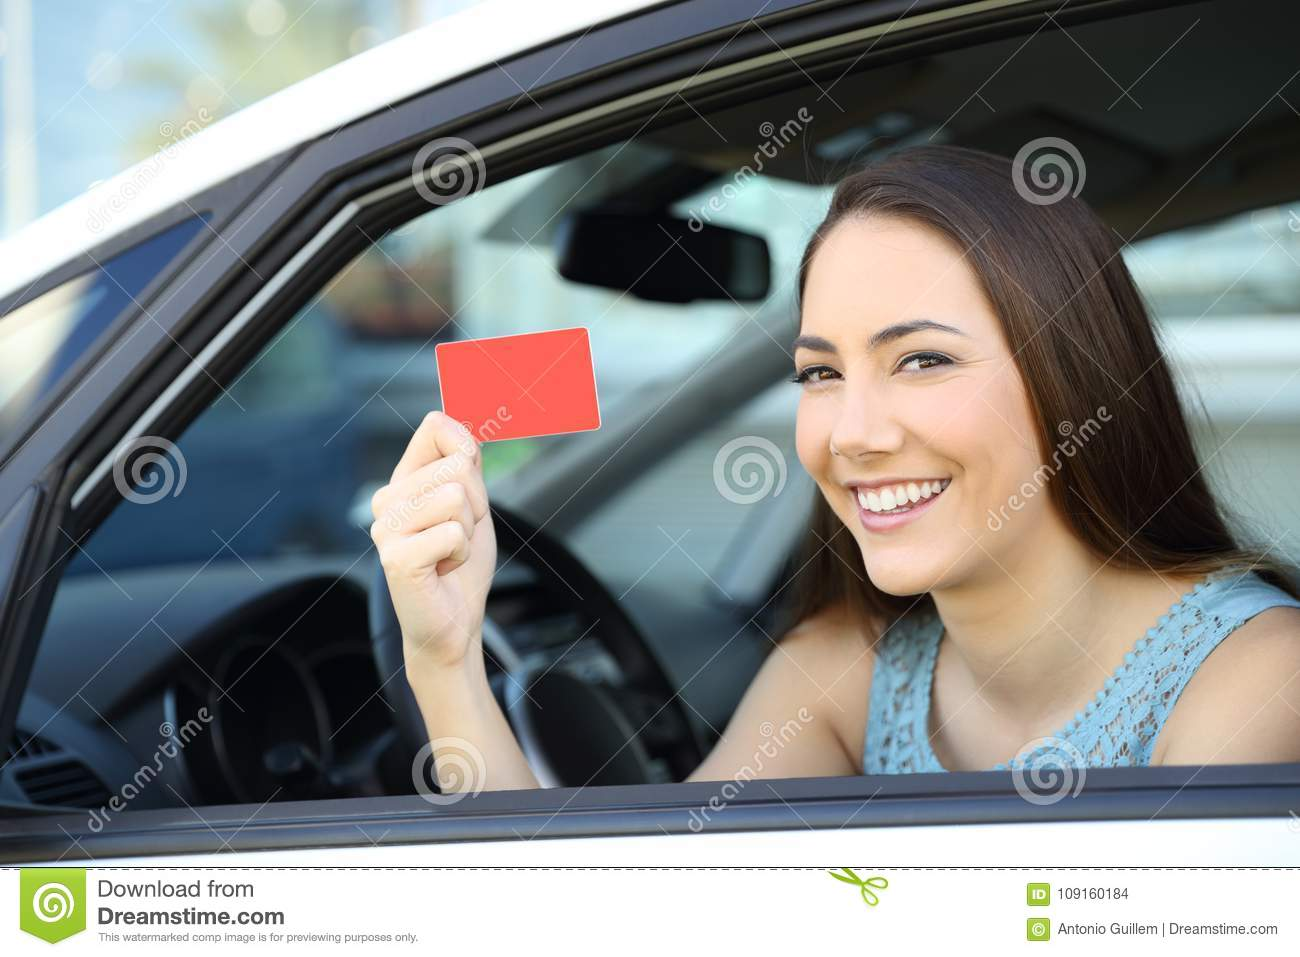 Driver showing a blank card inside a car